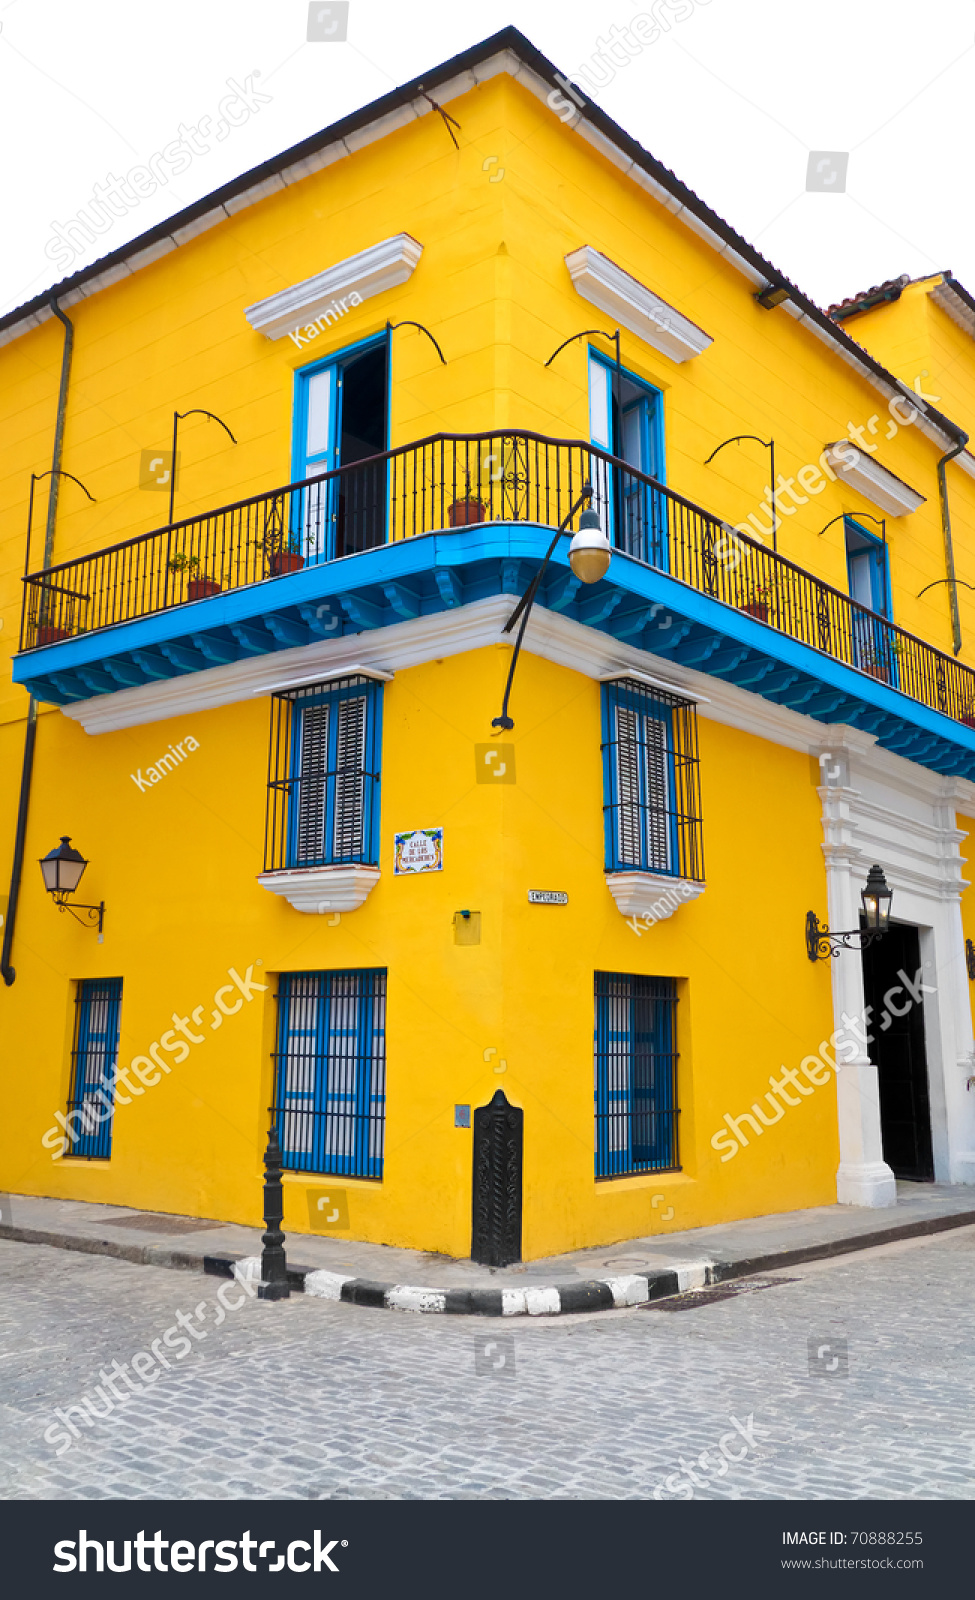 Typical Bright Yellow House Blue Doors Stock Photo Edit Now 70888255